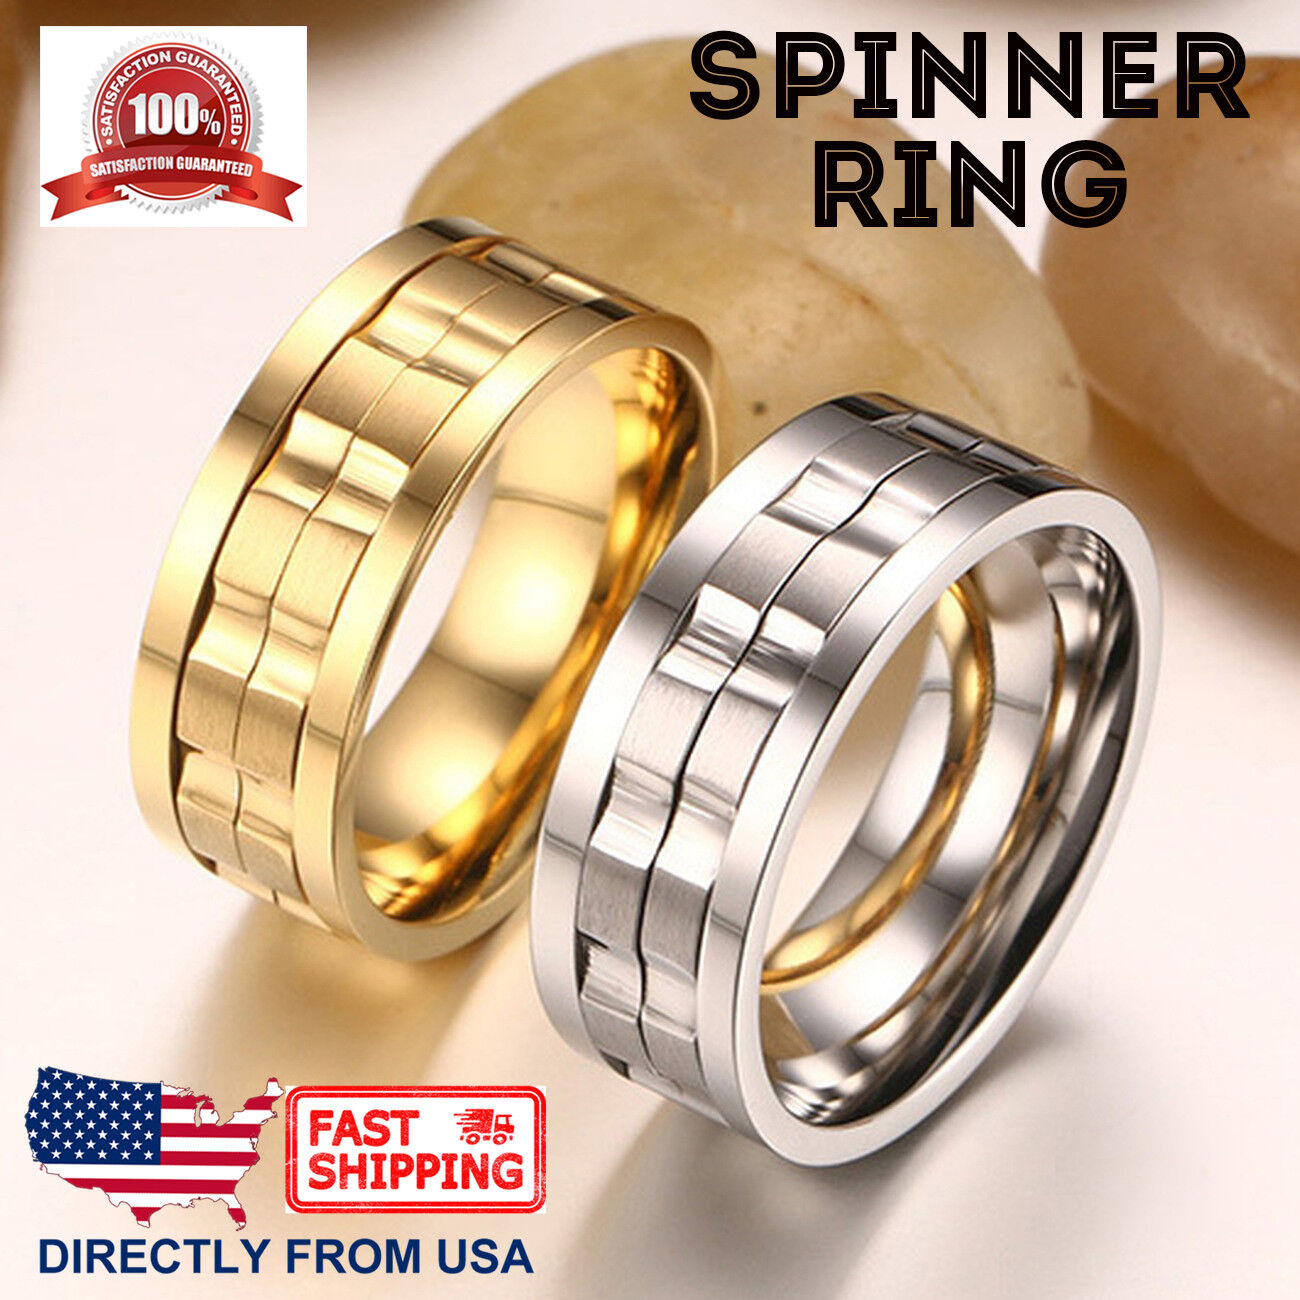 Men's Stainless Steel Anxiety Spinner Ring 9mm Wedding Band, Comfort Fit Jewelry & Watches